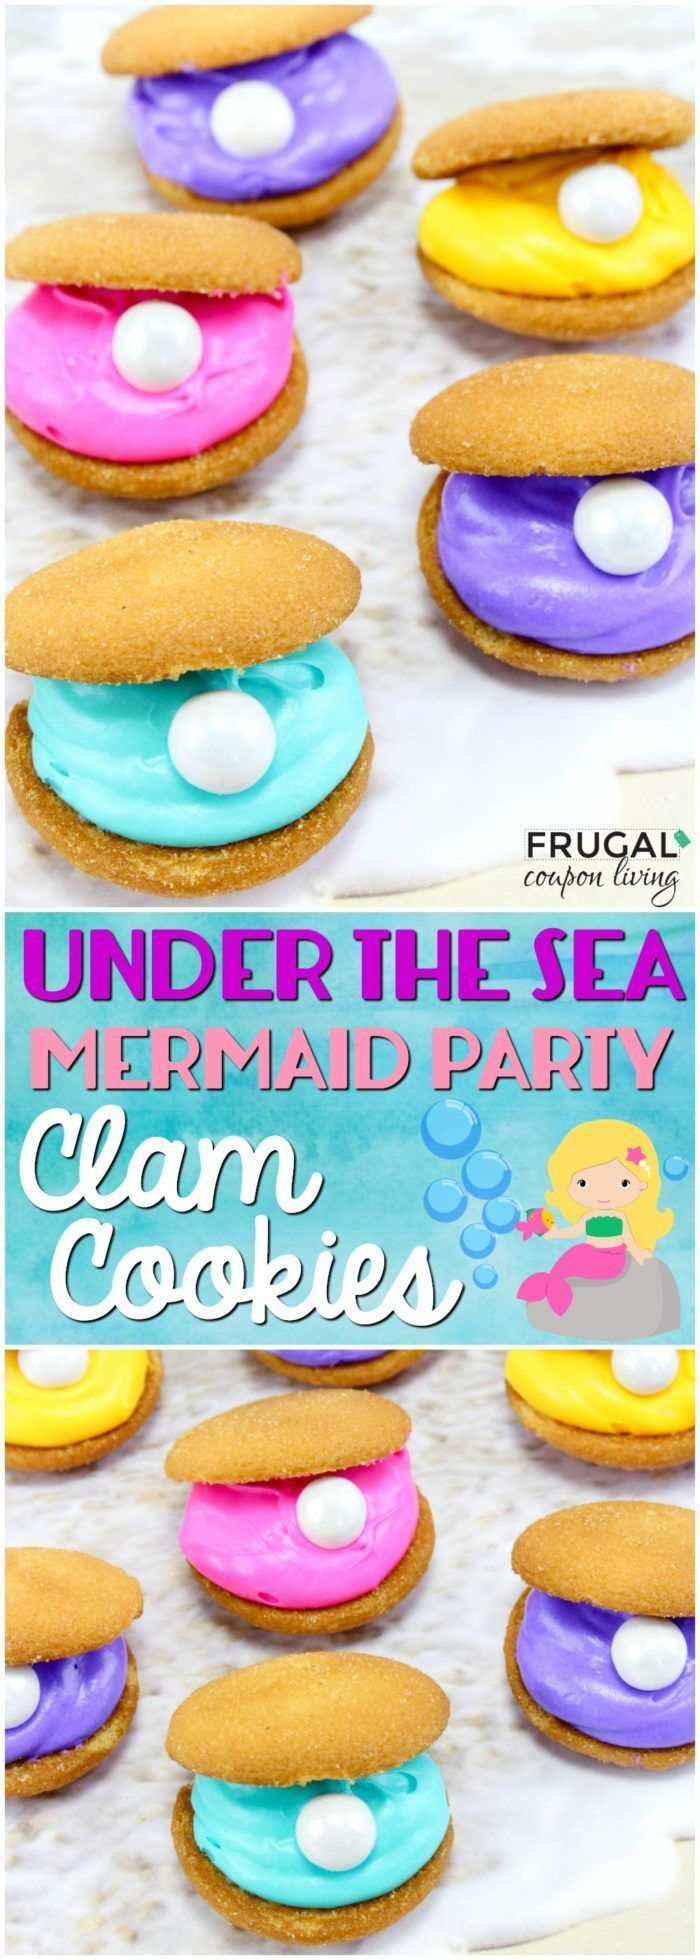 Hosting a mermaid party? How about something under the sea? We love these easy t...